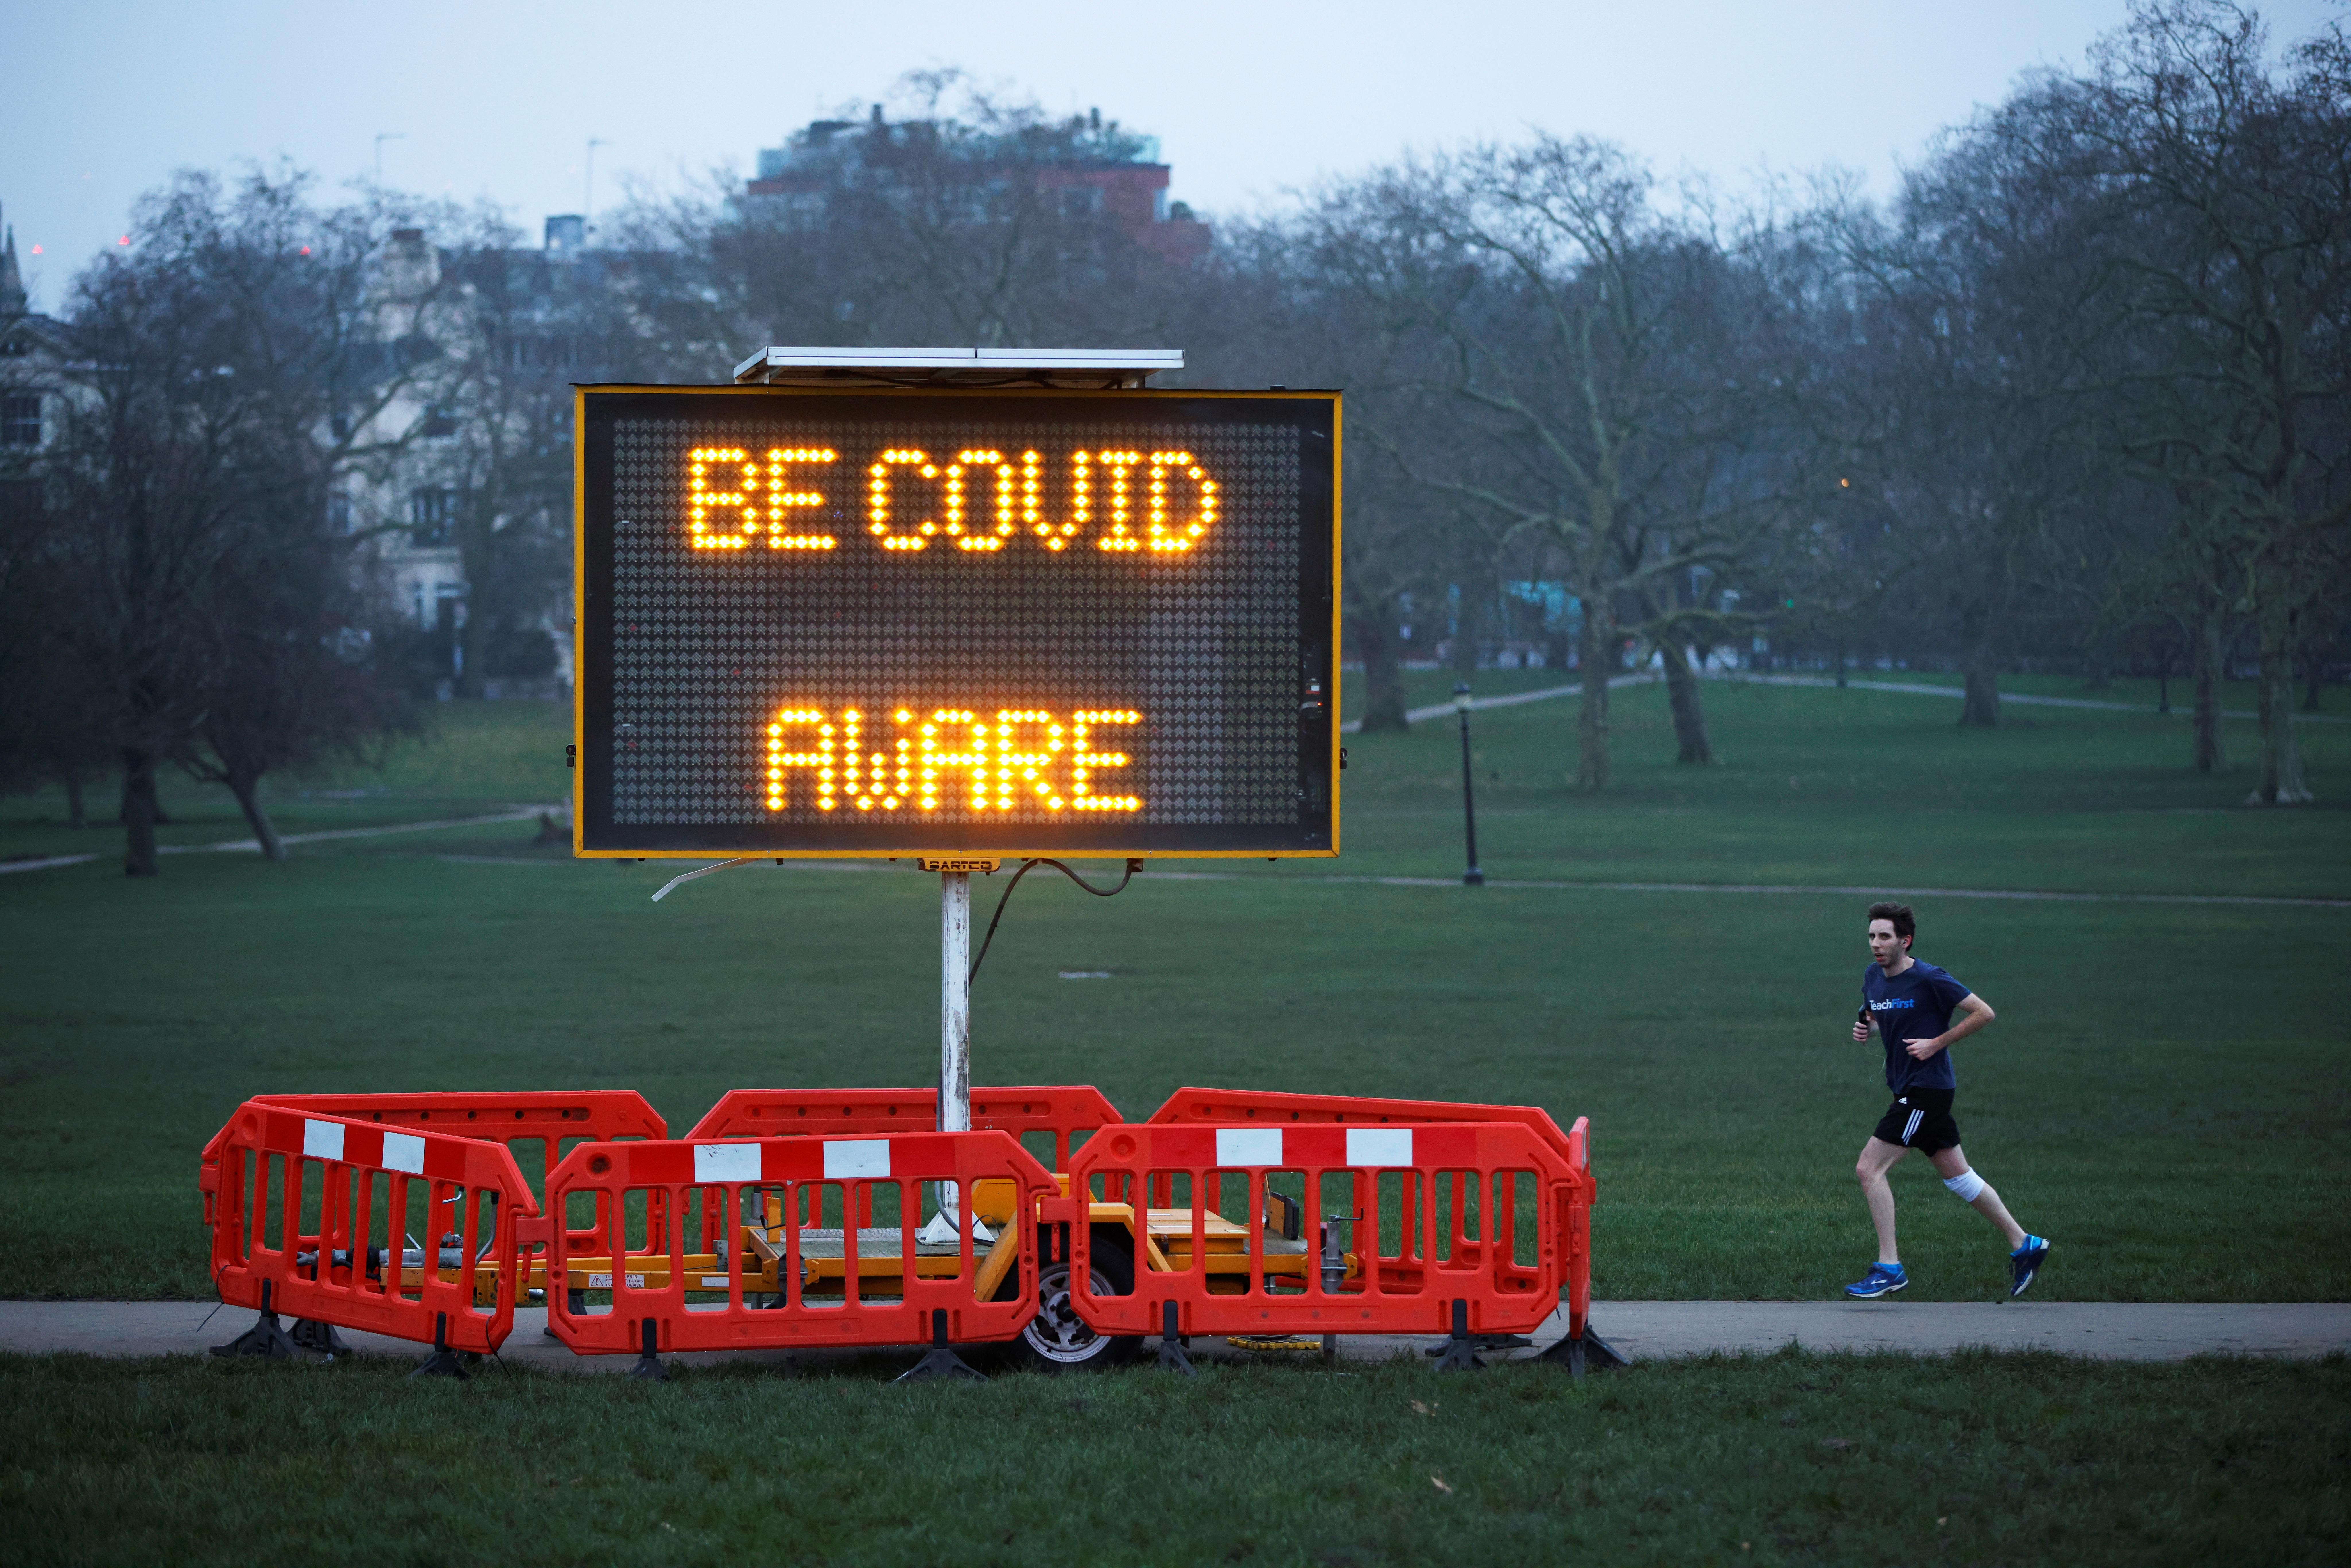 A man jogs past a public health information sign at dawn on the first day of 2021 on Primrose Hill amid the coronavirus disease (COVID-19) outbreak, in London, Britain January 1, 2021